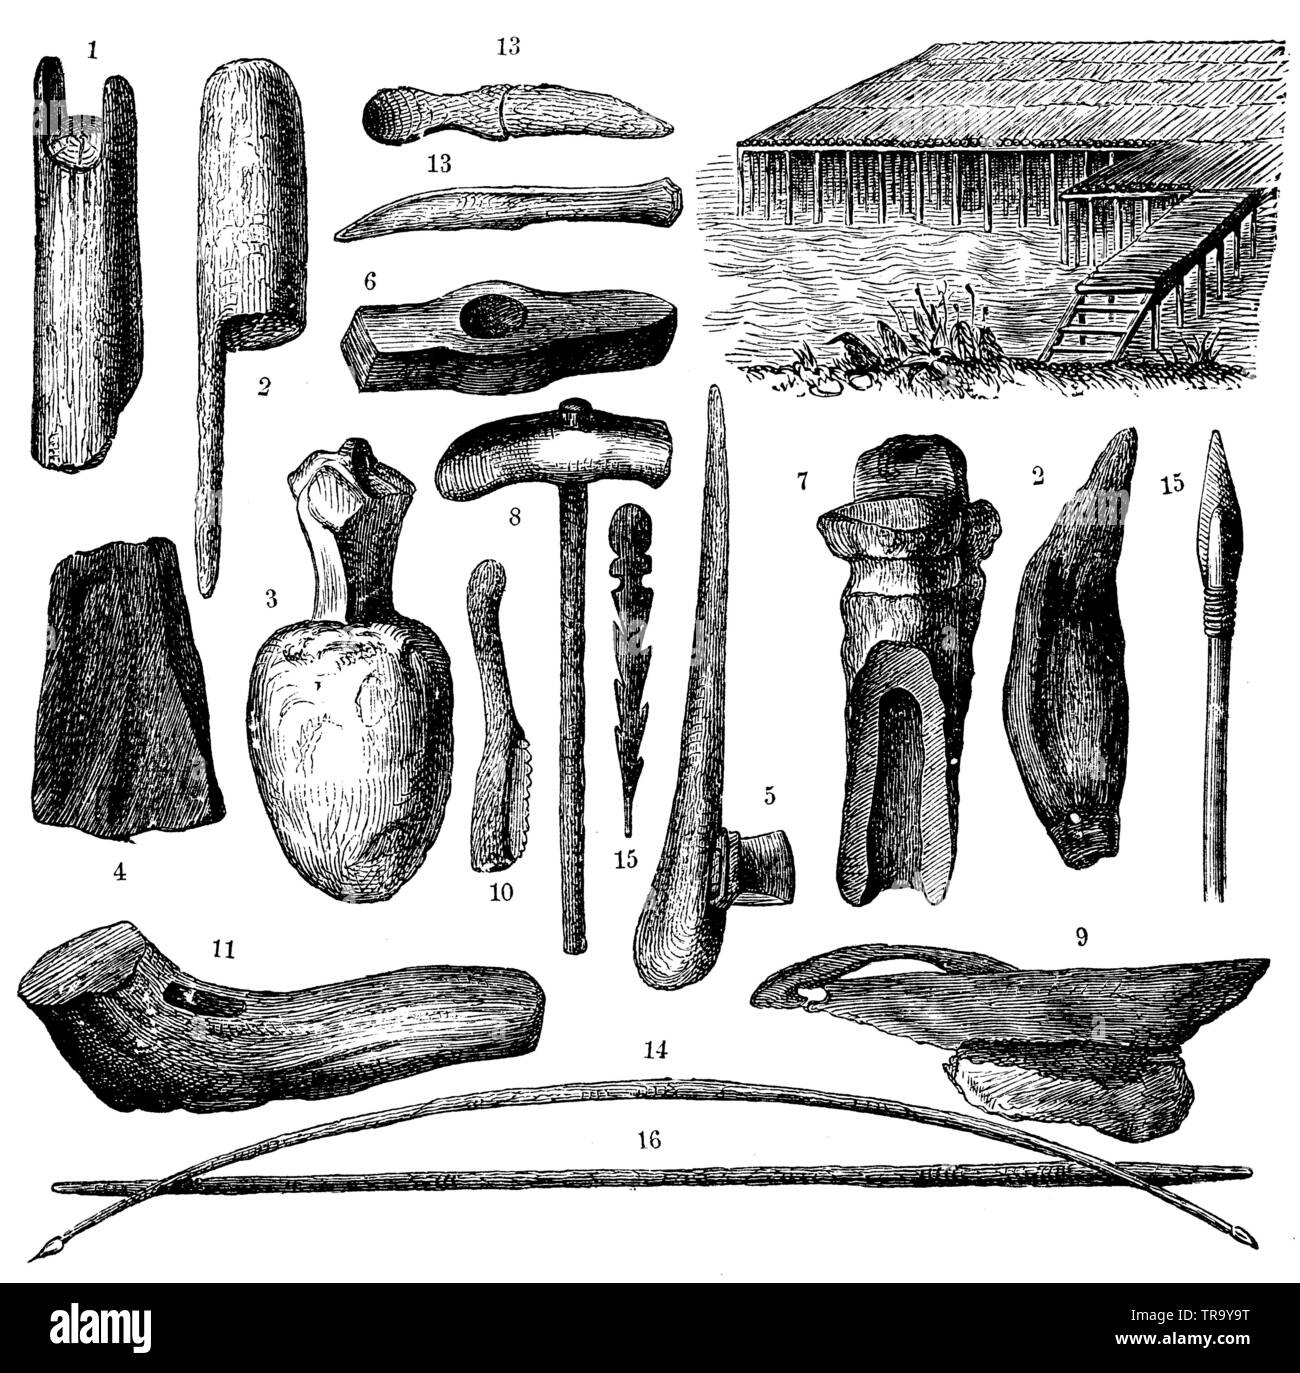 Weapons and tools from the age of pile dwellings. 1) Corner pile head, 2, 3) Wooden mallets for ramming in the piles. 4) Stone wedge. 5) Holmaxt. 6) Stone hammer. 7) Stone axe. 8) Axe hammer. 9) Stone saw. 10) Flint saw. 11) Deer horn hammer. 12) Bear tooth (puncturing tool). 13) Two yew wood knives. 14) Hunting bow and war bow made of yew wood. 15) Spearheads. 16) Throwing spear, ,  (anthropology book, 1874) - Stock Image